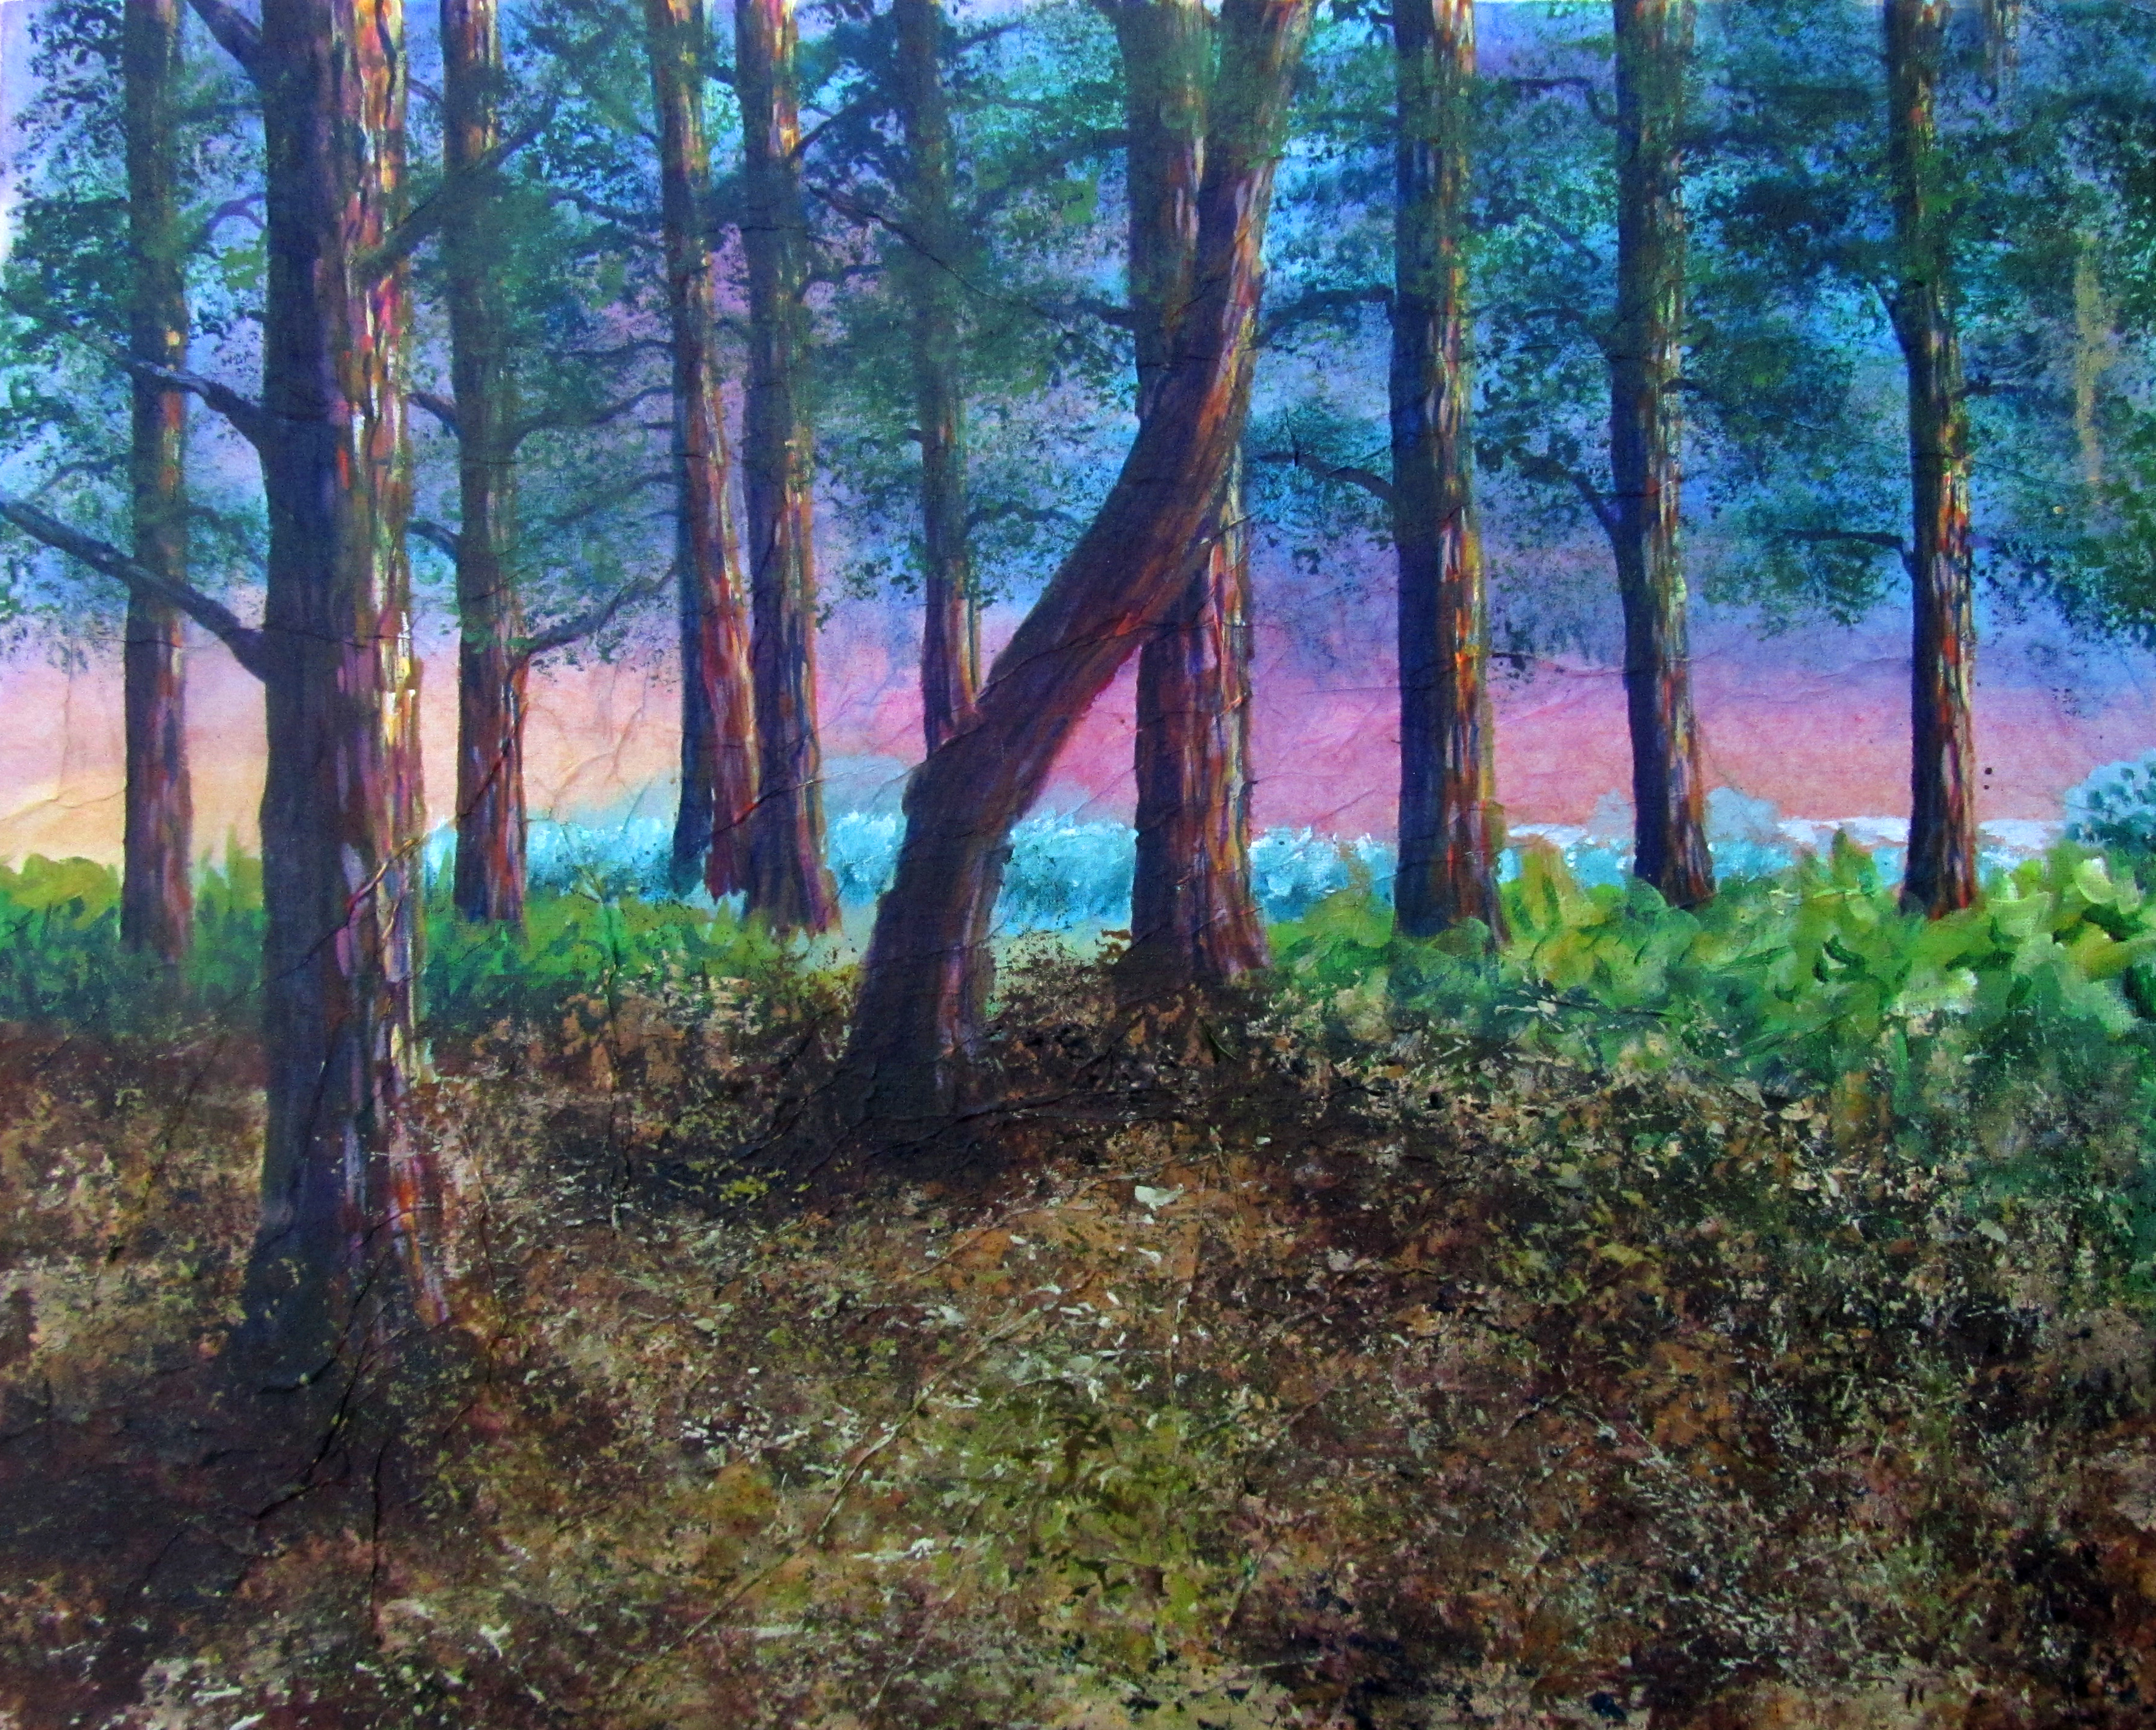 Arne Pines completed